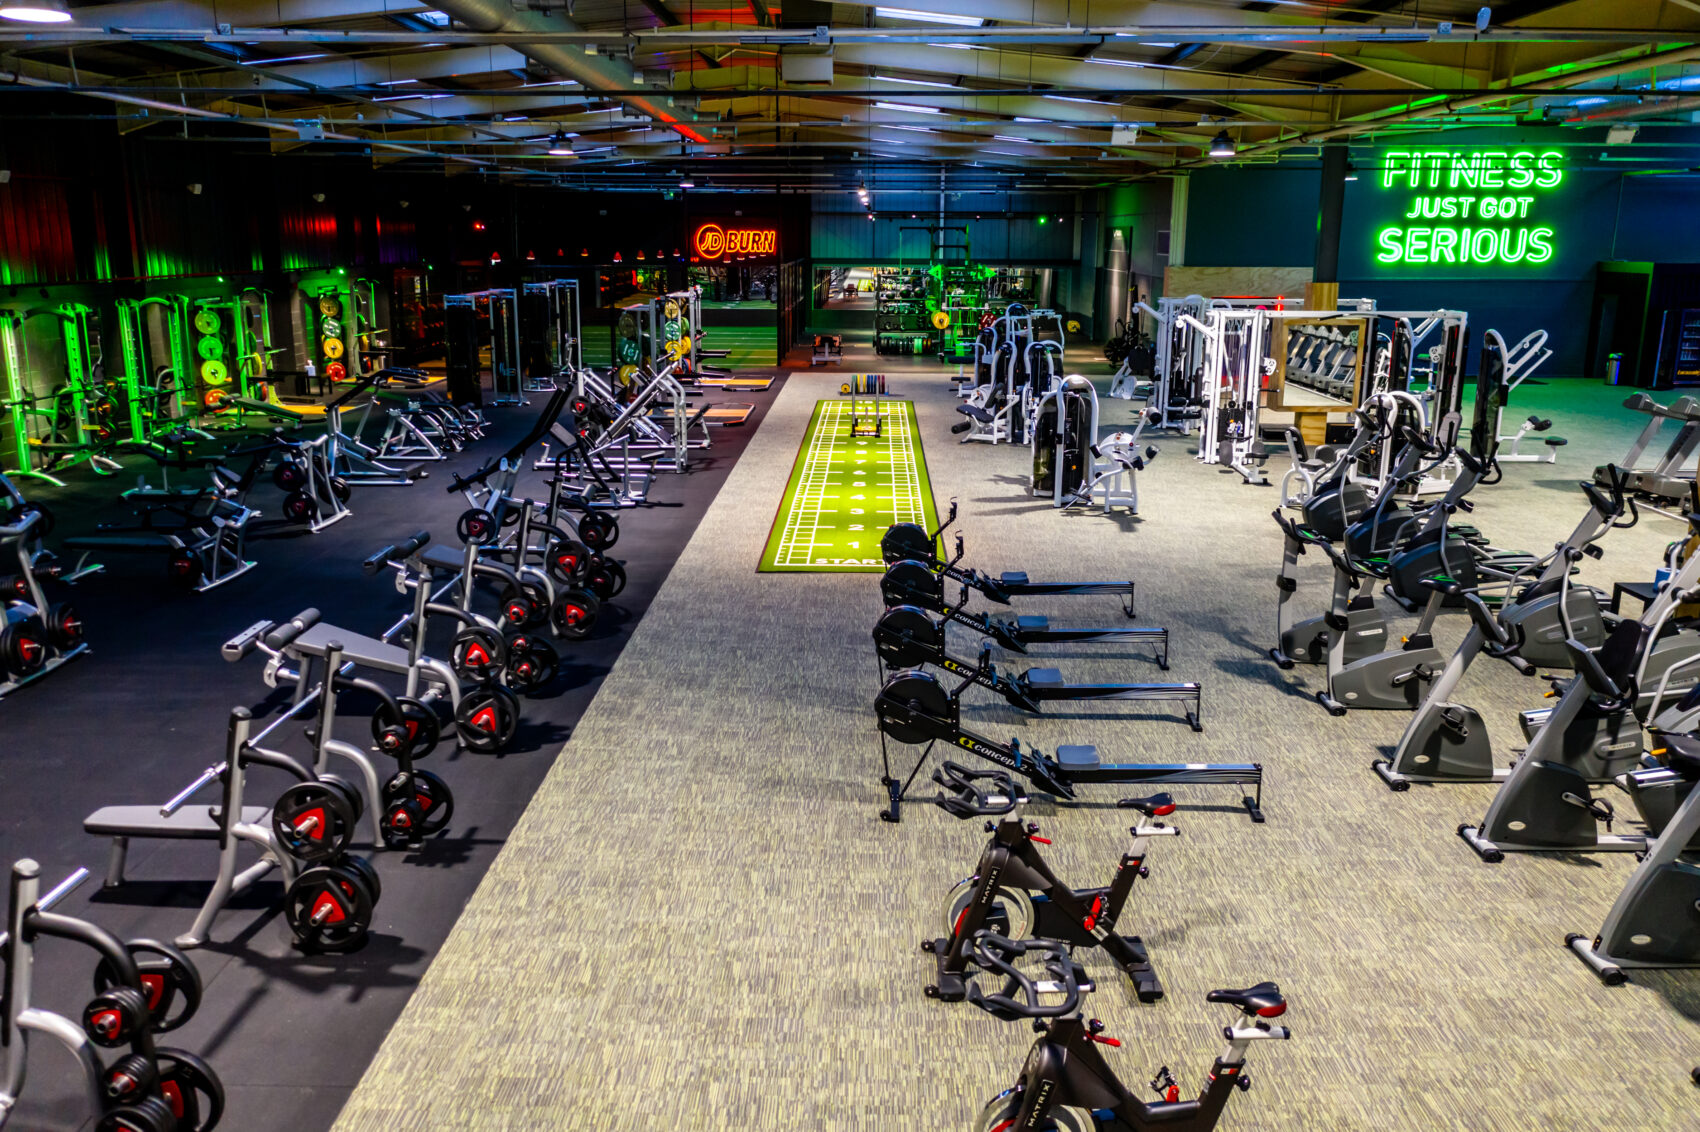 JD_Gyms_Rotherham_(Empty_Gym)_Pictures-9[1]